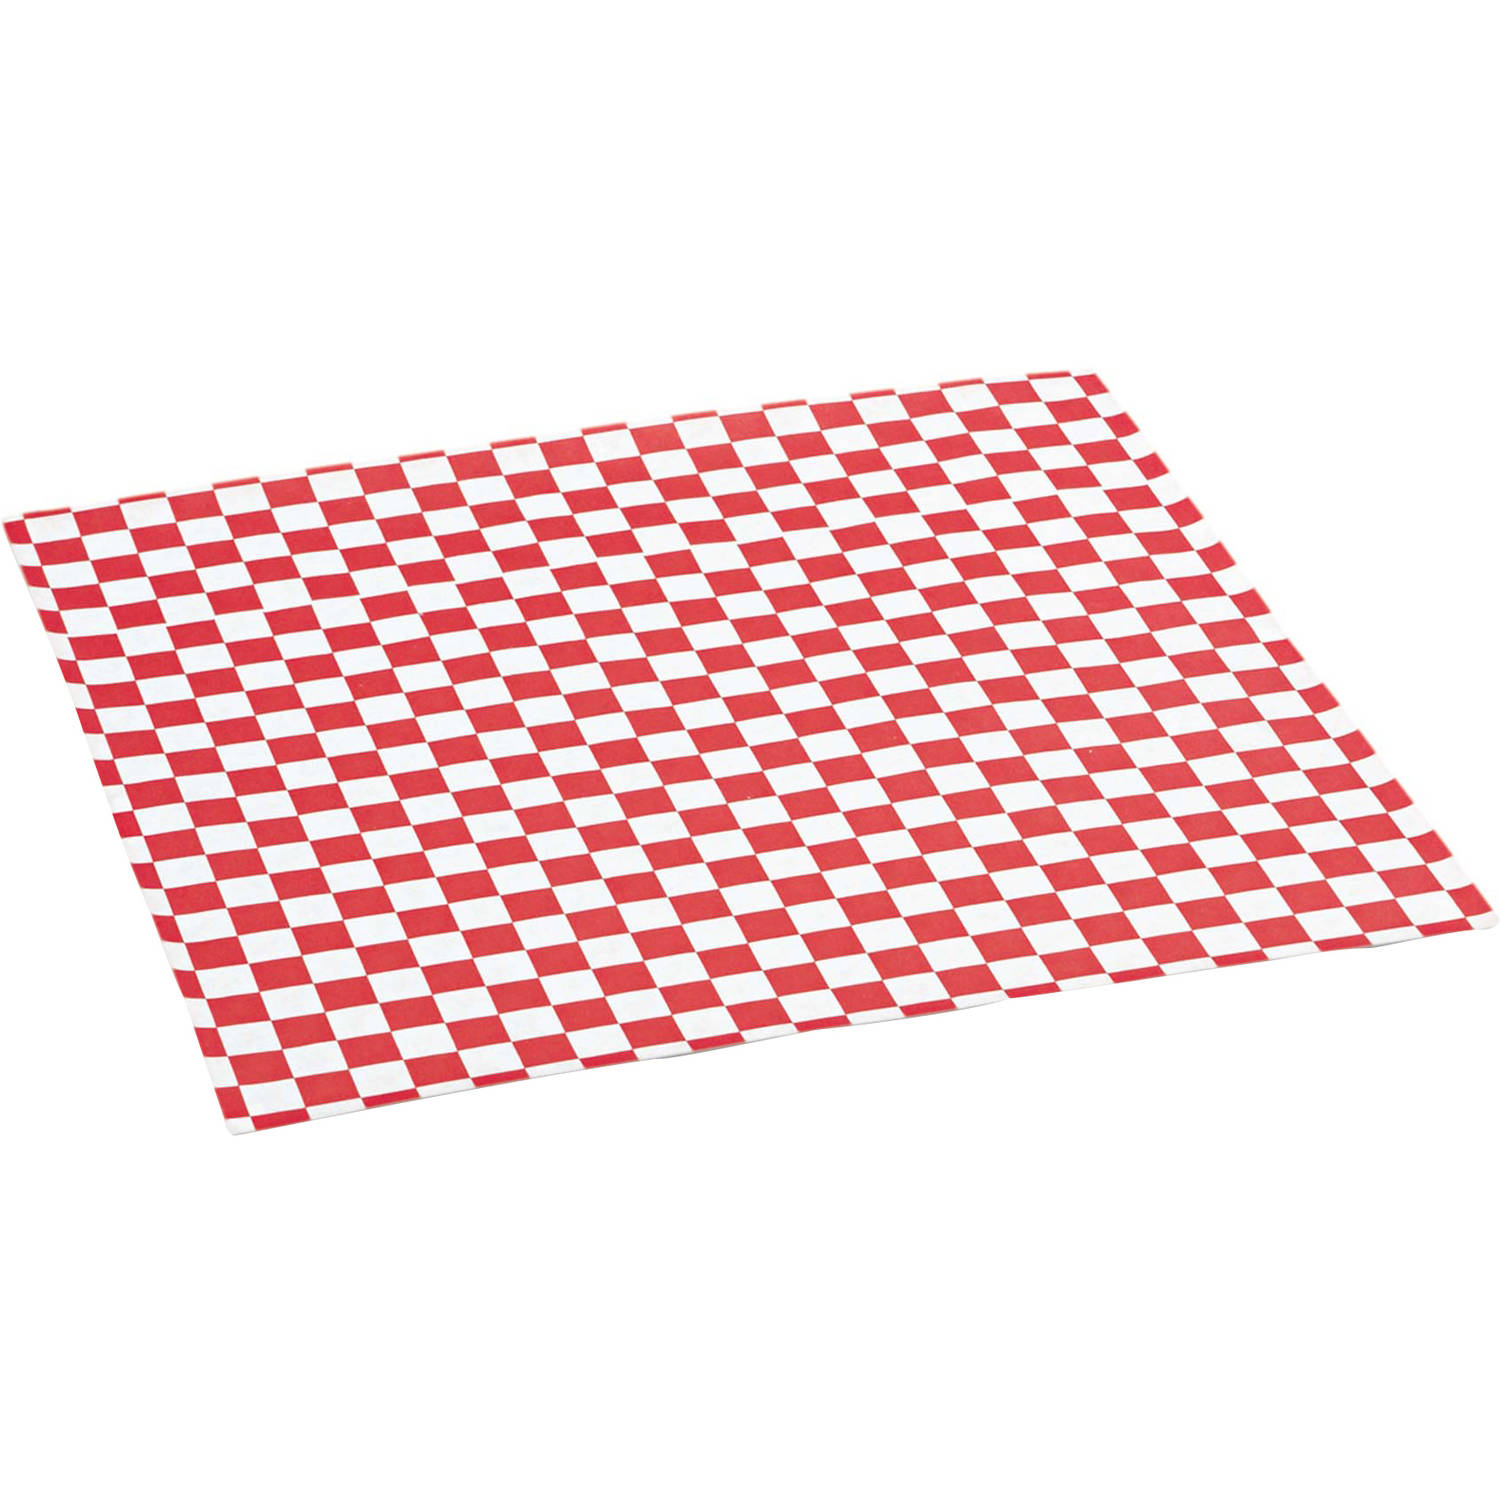 Bagcraft Papercon Red Checkered Grease-Resistant Paper Wrap/Liners, 1000 count, (Pack of 5)